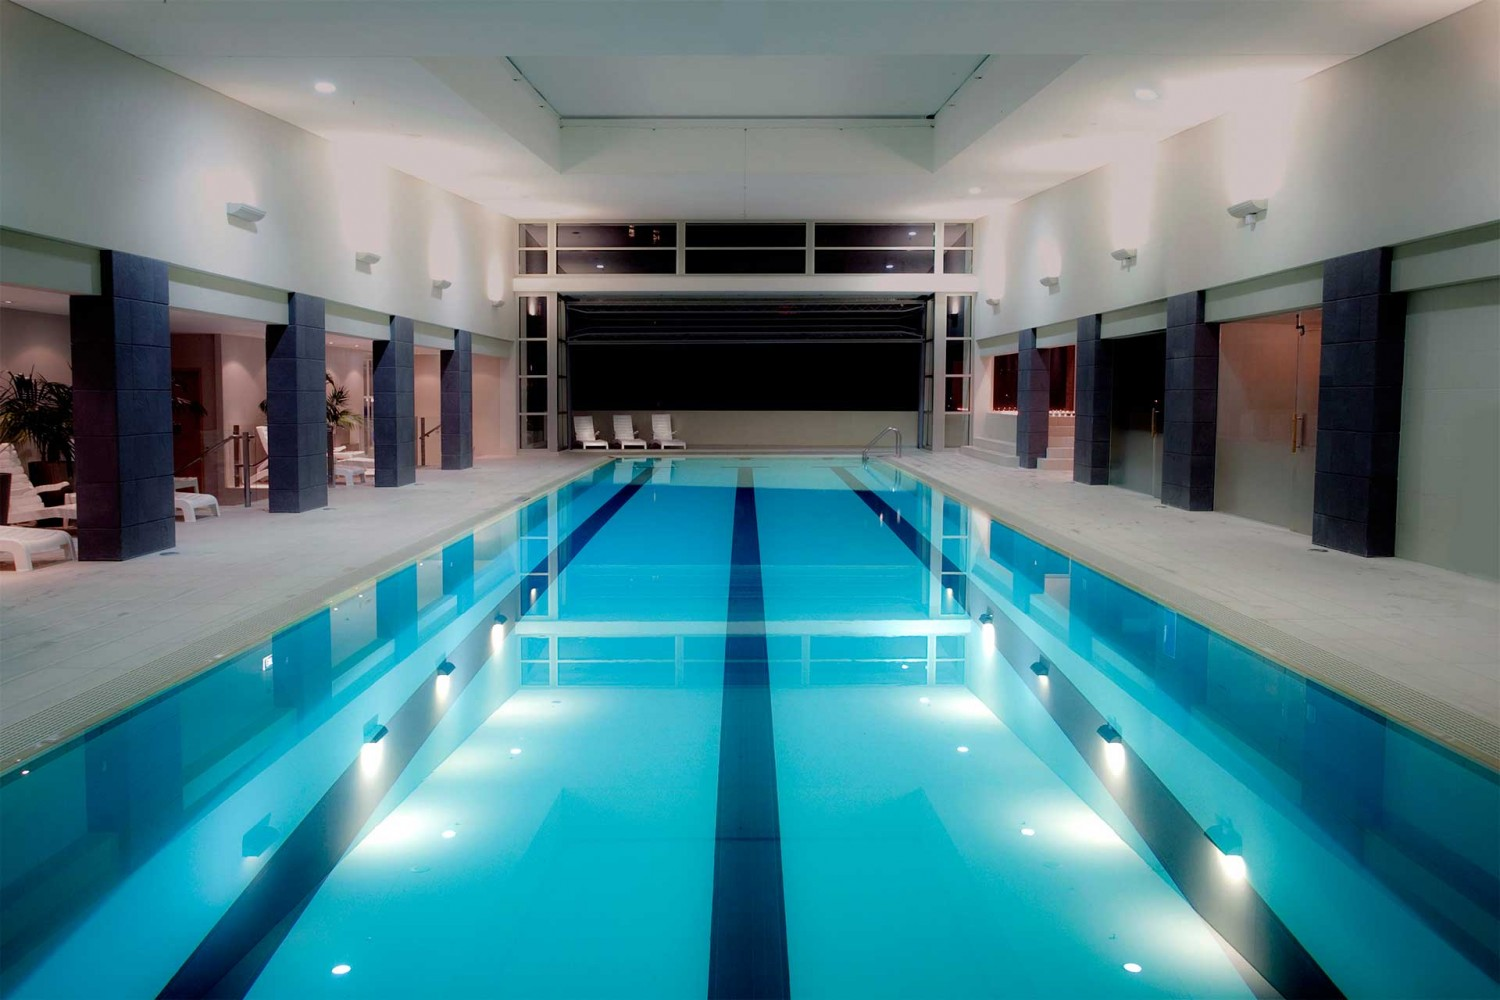 Pullman auckland swimming pool - Pullman central park swimming pool ...